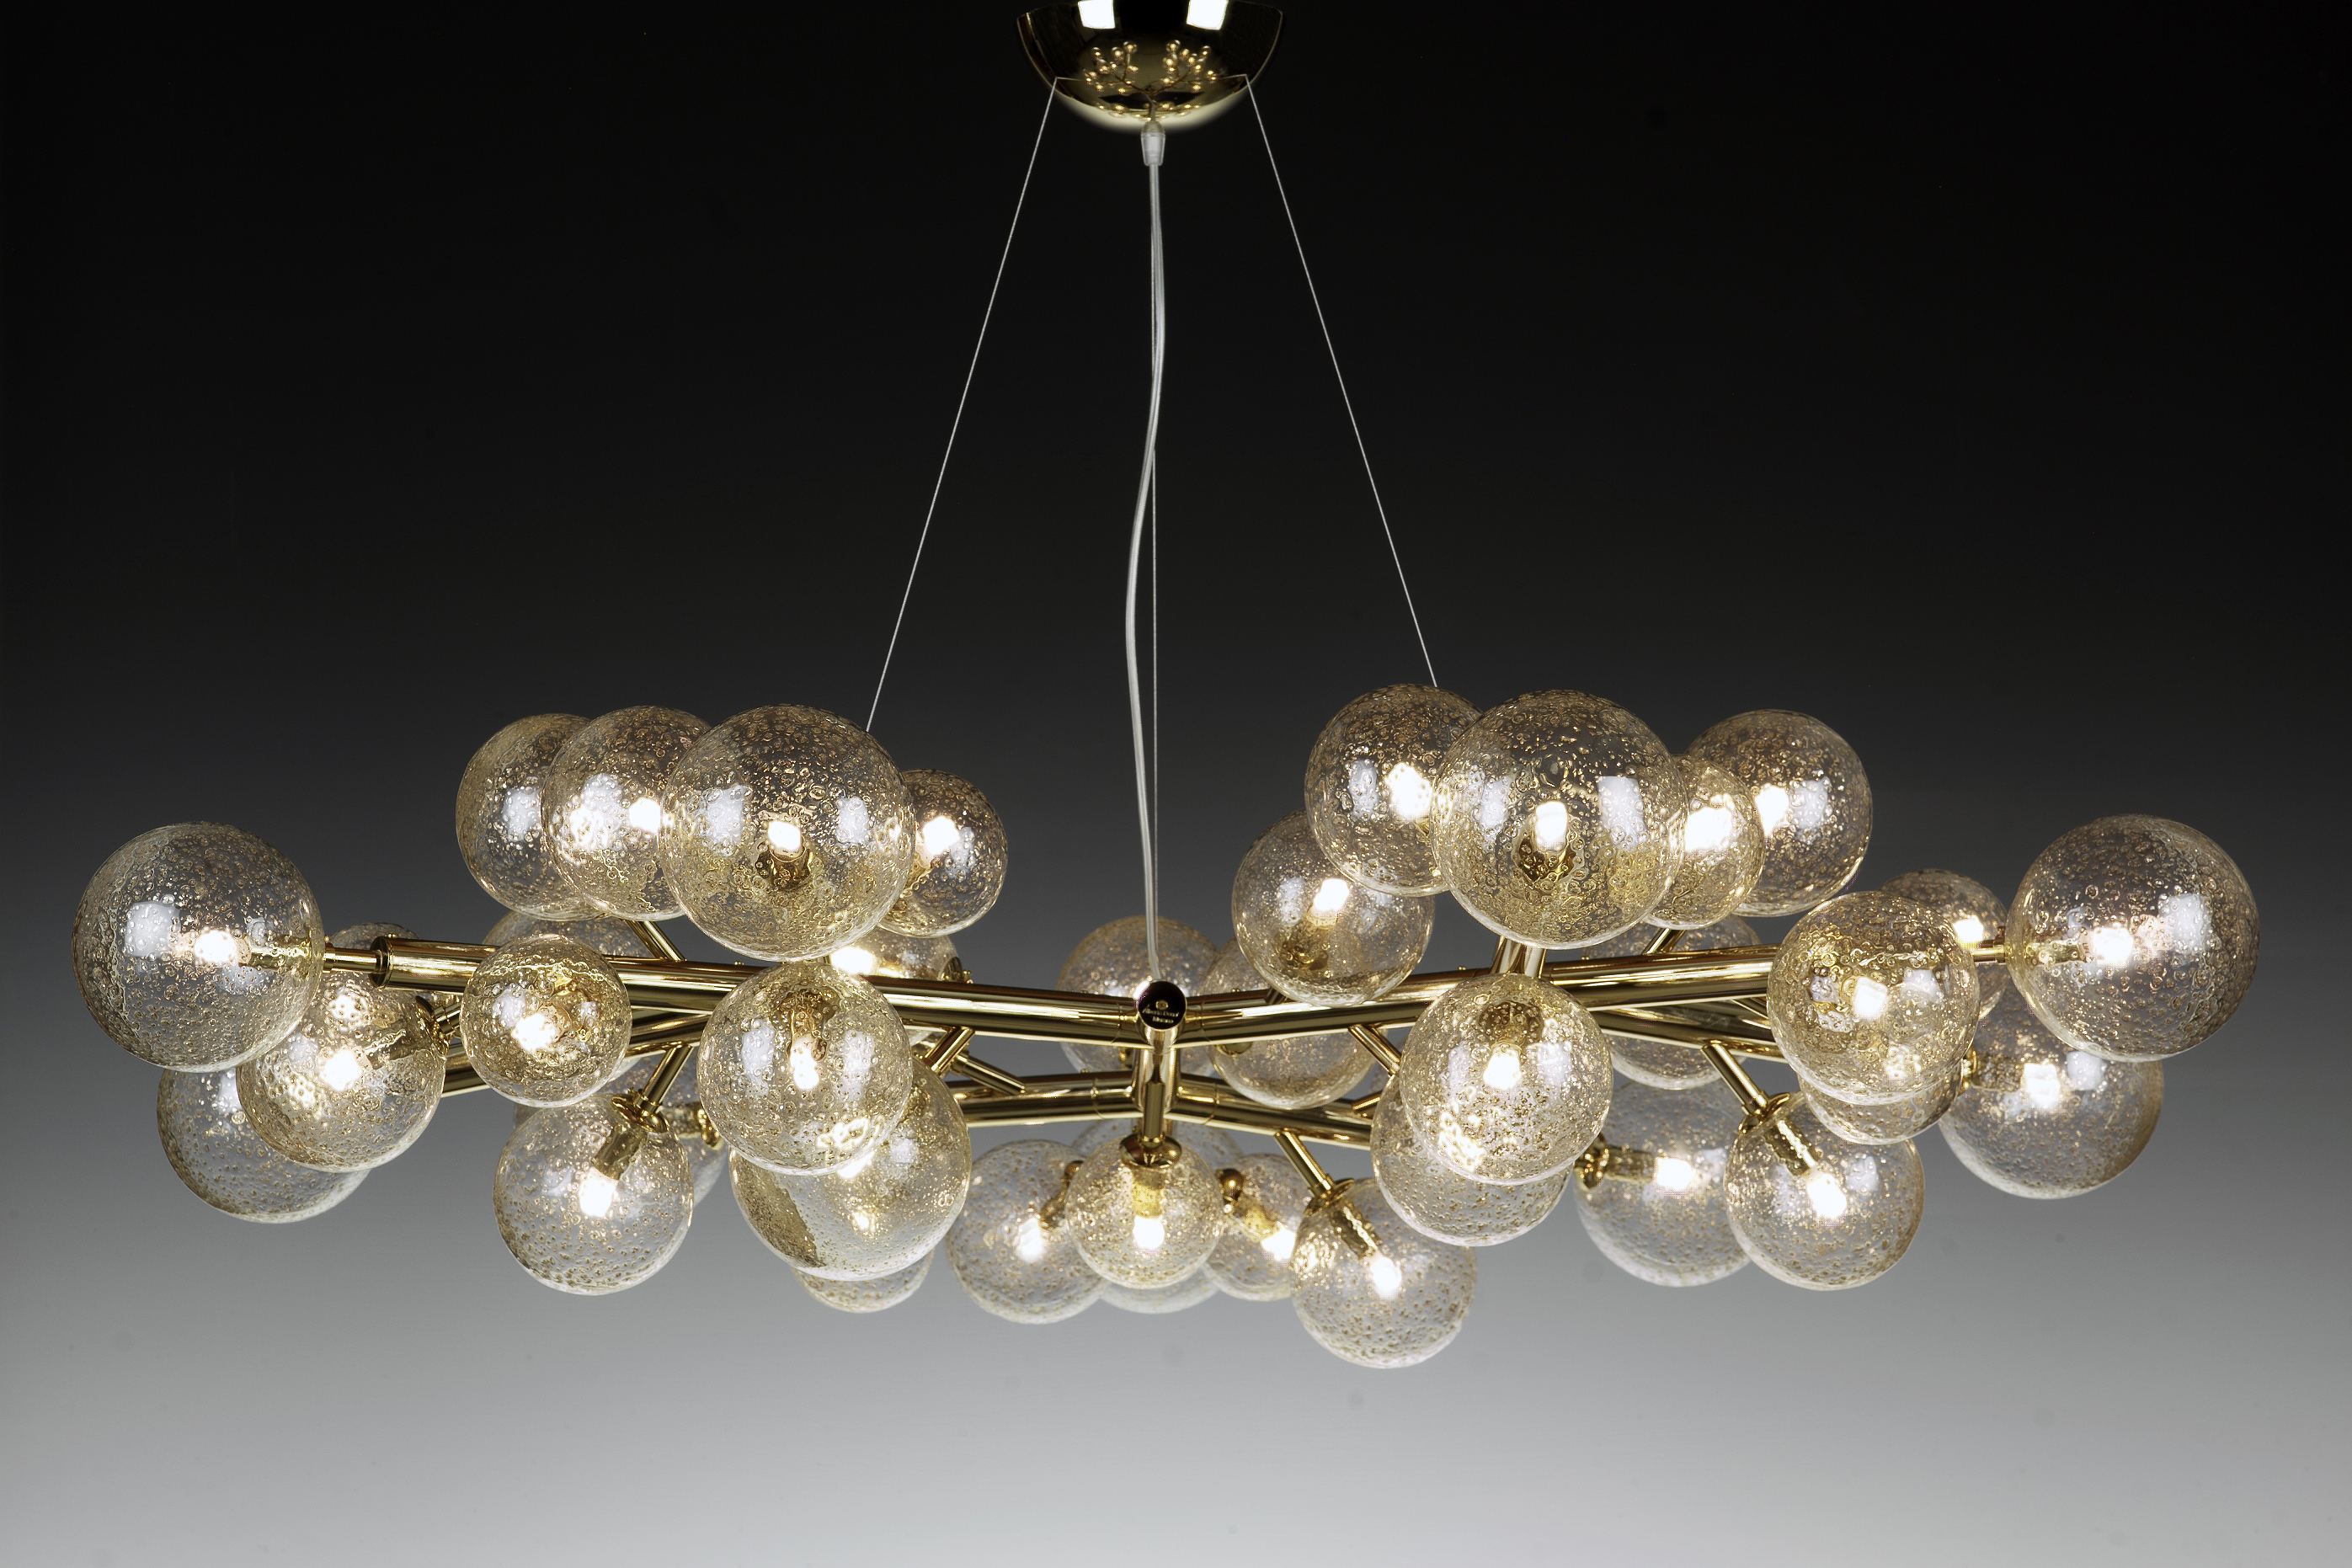 Mimosa 42 Brass Chandelier - <p>This chandelier, designed and realised by the glassmaster Alberto Donà , is totally different from our classic collection. Its peculiarity is the simplicity of the frame decorated with 42 glass spheres – that during blowing are decorated by the master adding  gold, copper or brass powder. The result is a simple but impressive chandelier especially when lighted. Each sphere has a G9 2.5w bulb. Chandeliers are available in different sizes.</p>  | Matter of Stuff